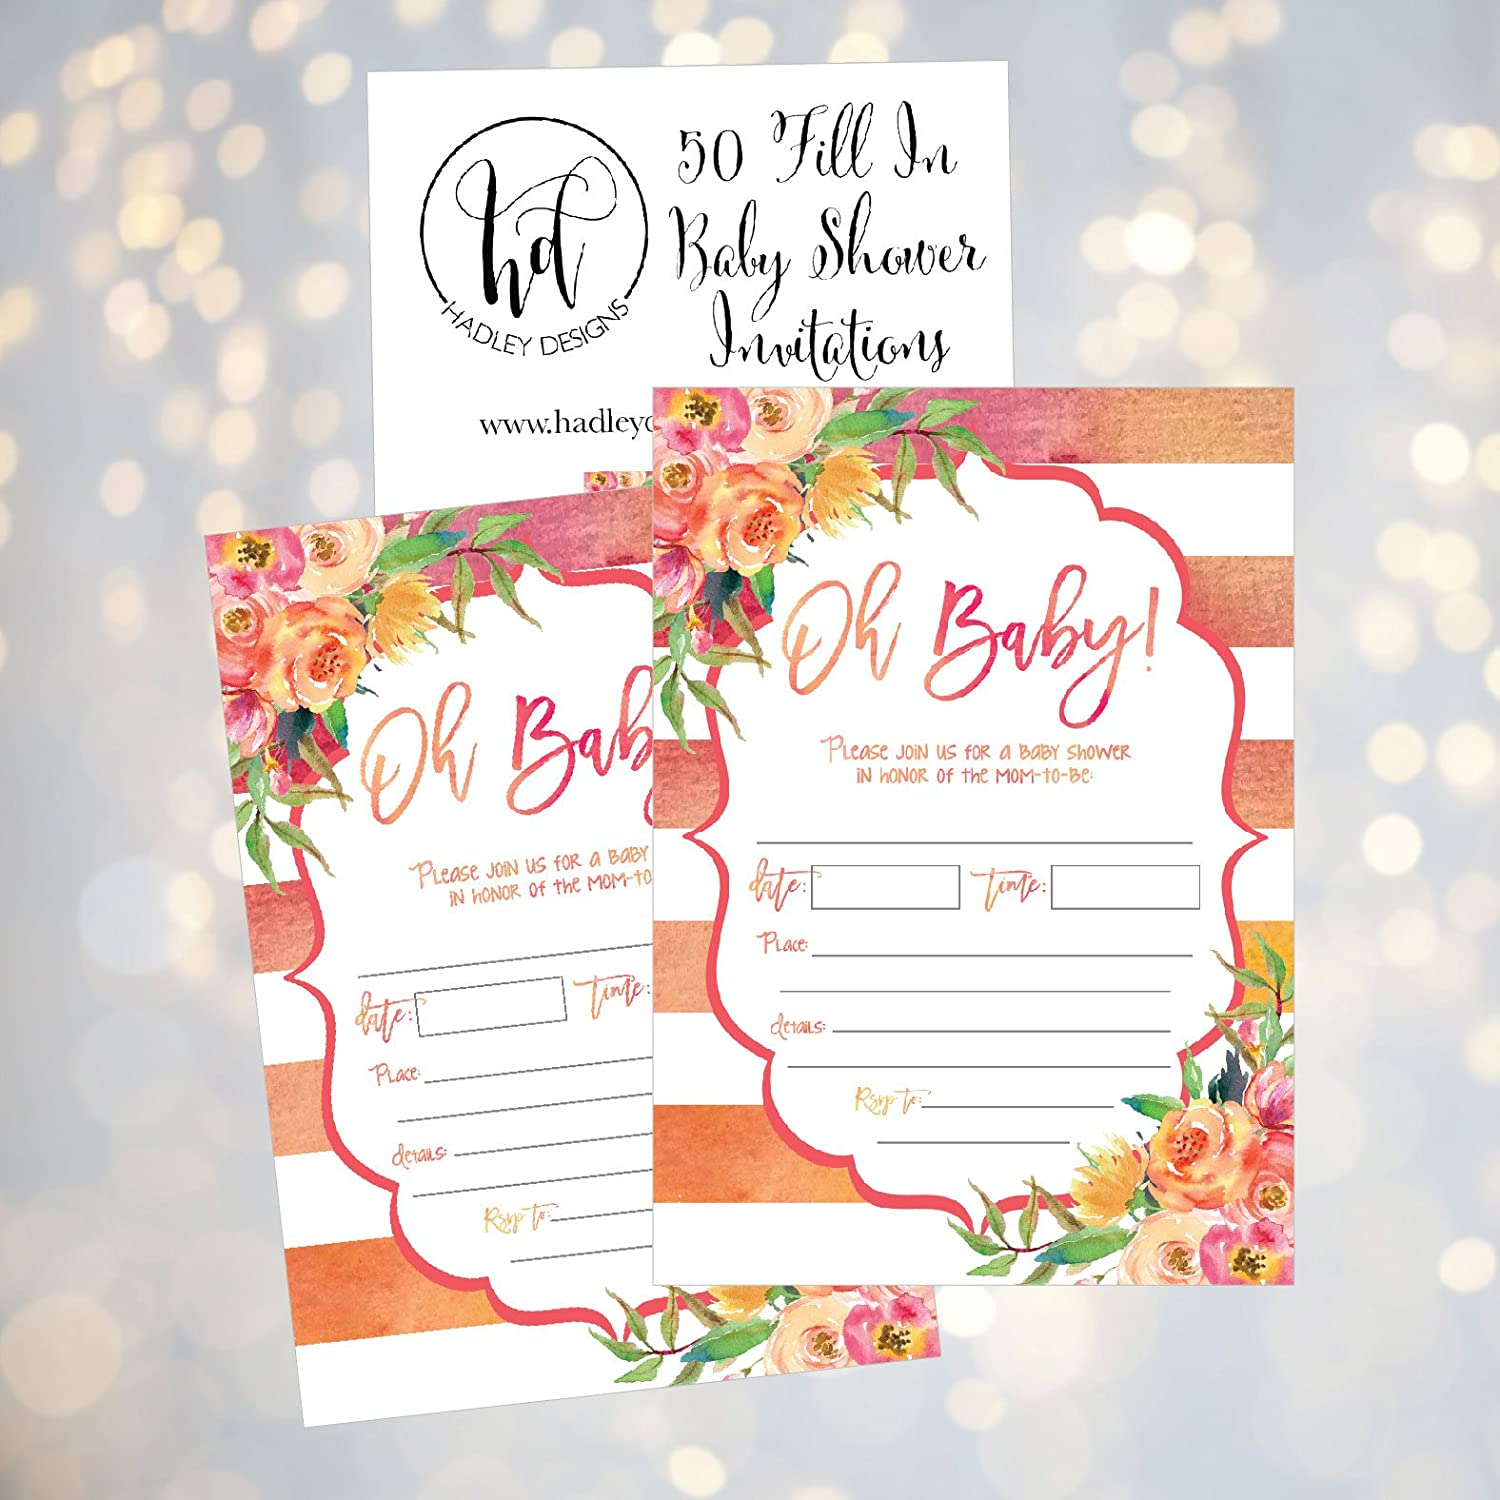 Amazoncom 50 Fill In Cute Baby Shower Invitations, Baby Shower